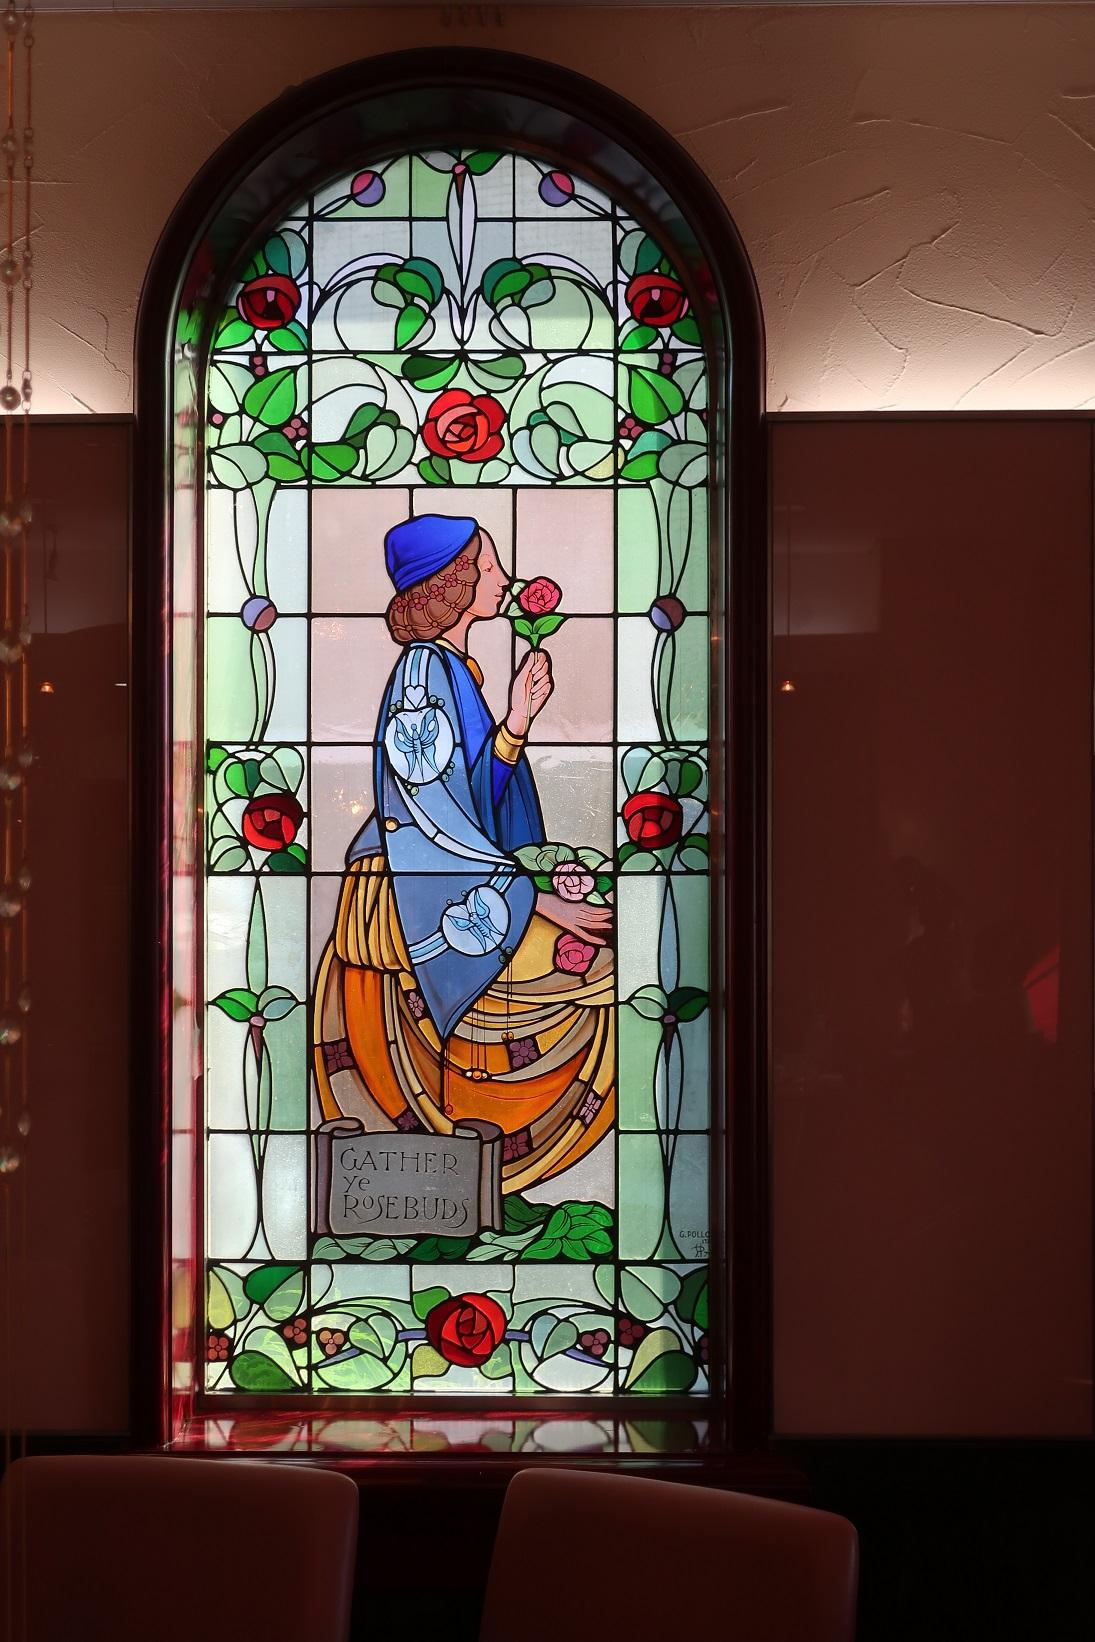 Stained glass image of patisserie Noah